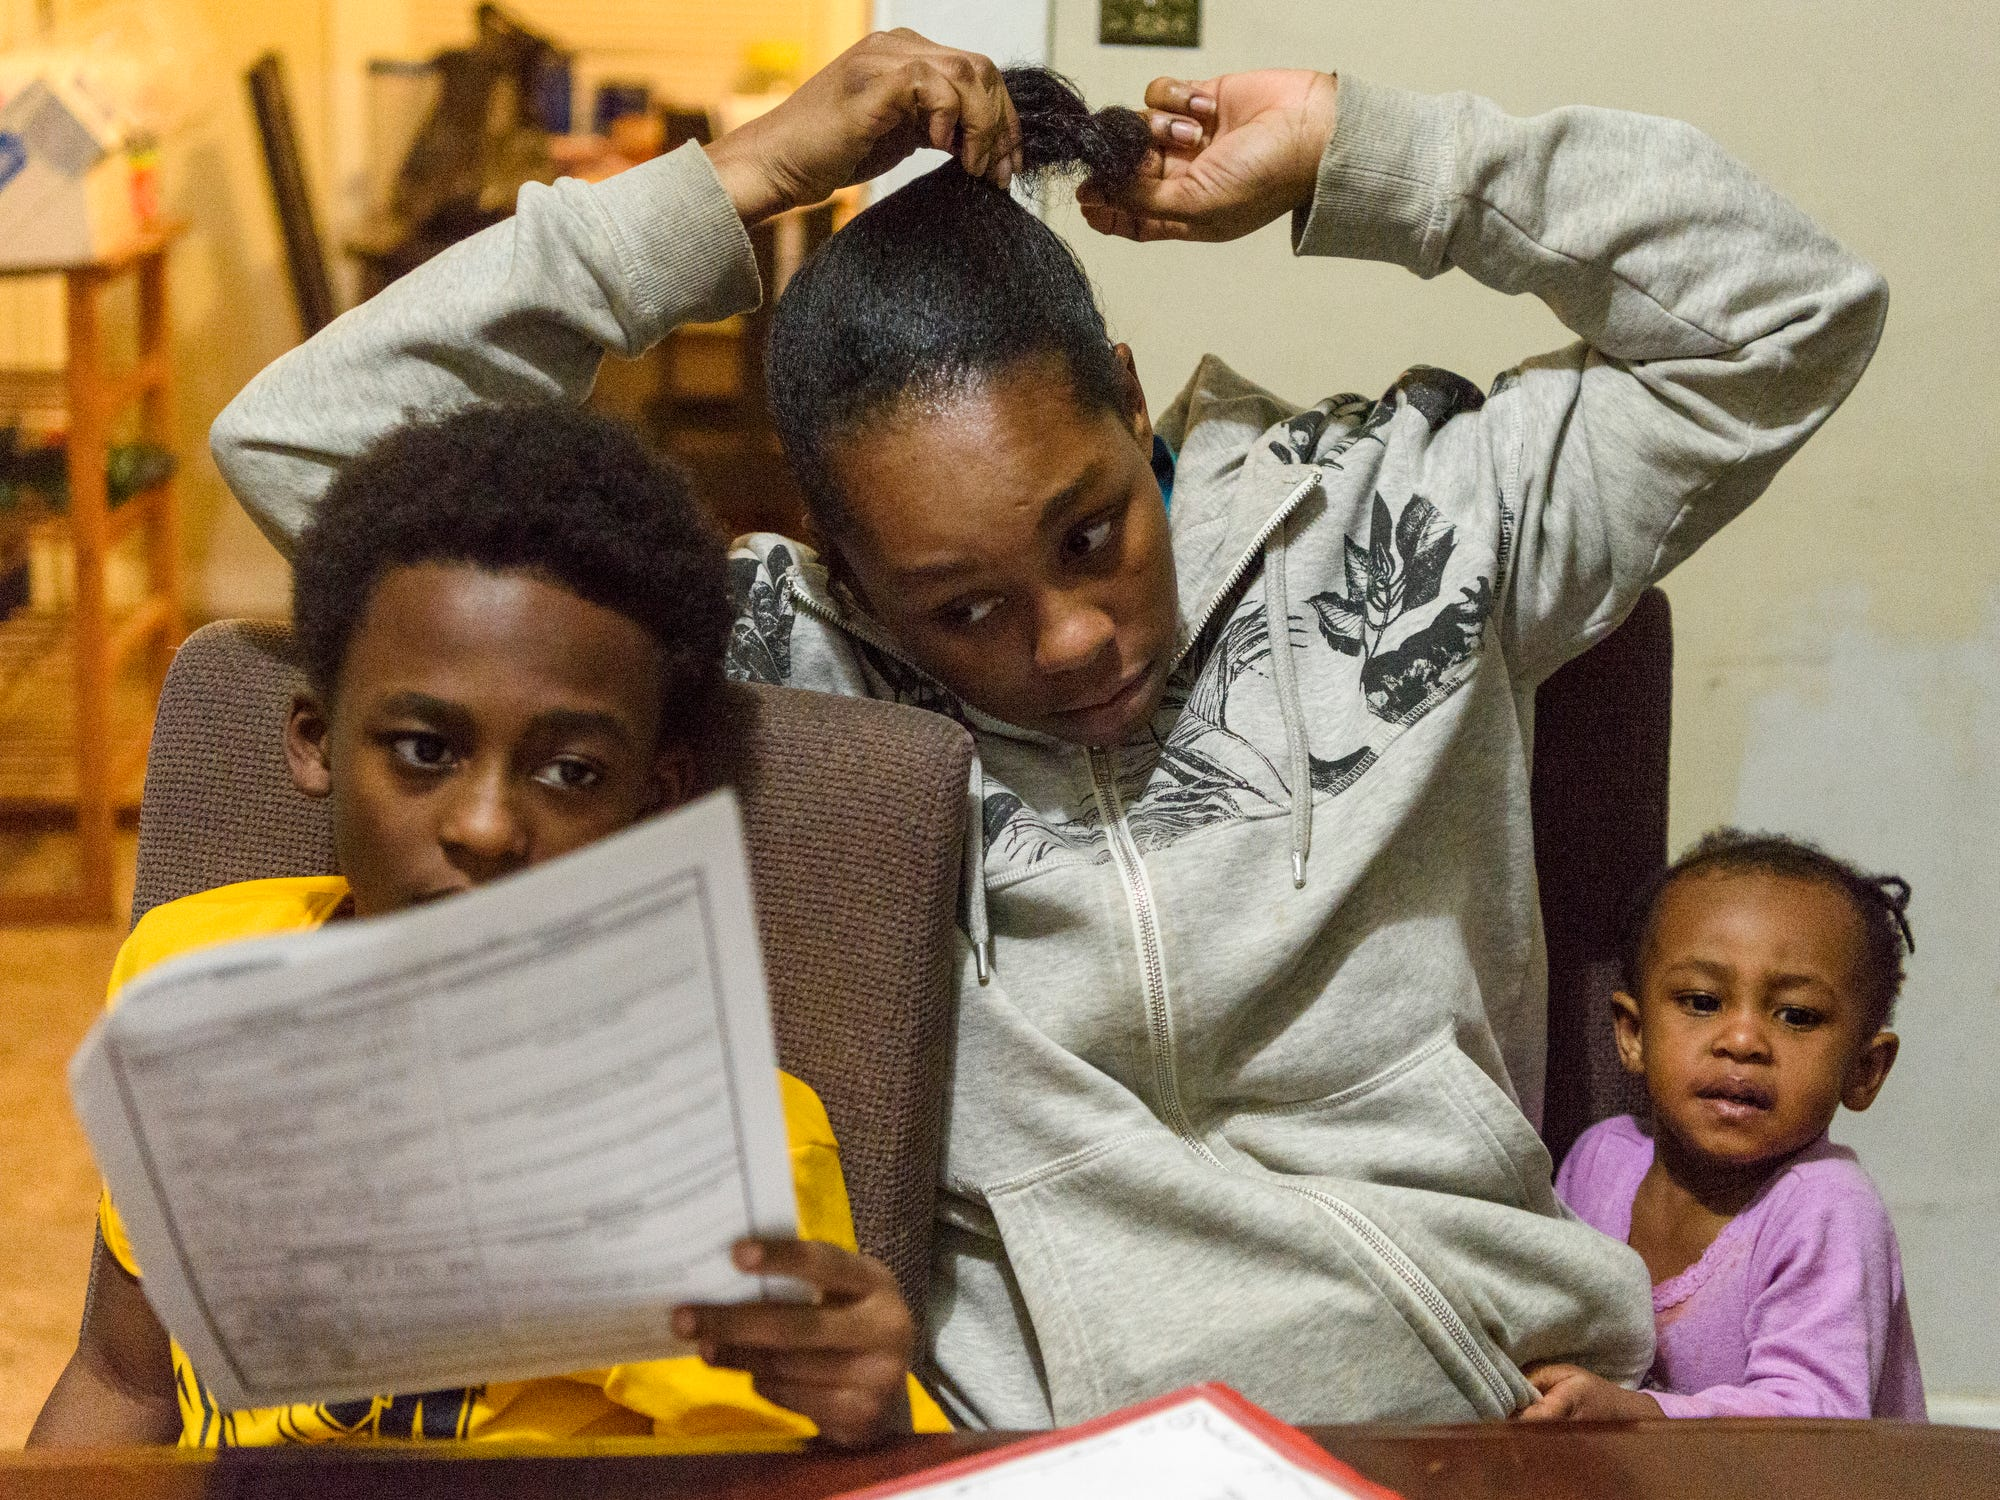 Tamisha Dilworth, center, looks over her son Travon's homework as her daughter Teresa vies for her attention, Wednesday evening, Feb. 13, 2019. Dilworth works long hours every weekend as a Certified Nursing Assistant, which allows her to help her children get to and from school, do their homework and spend time together as a family on weekdays.